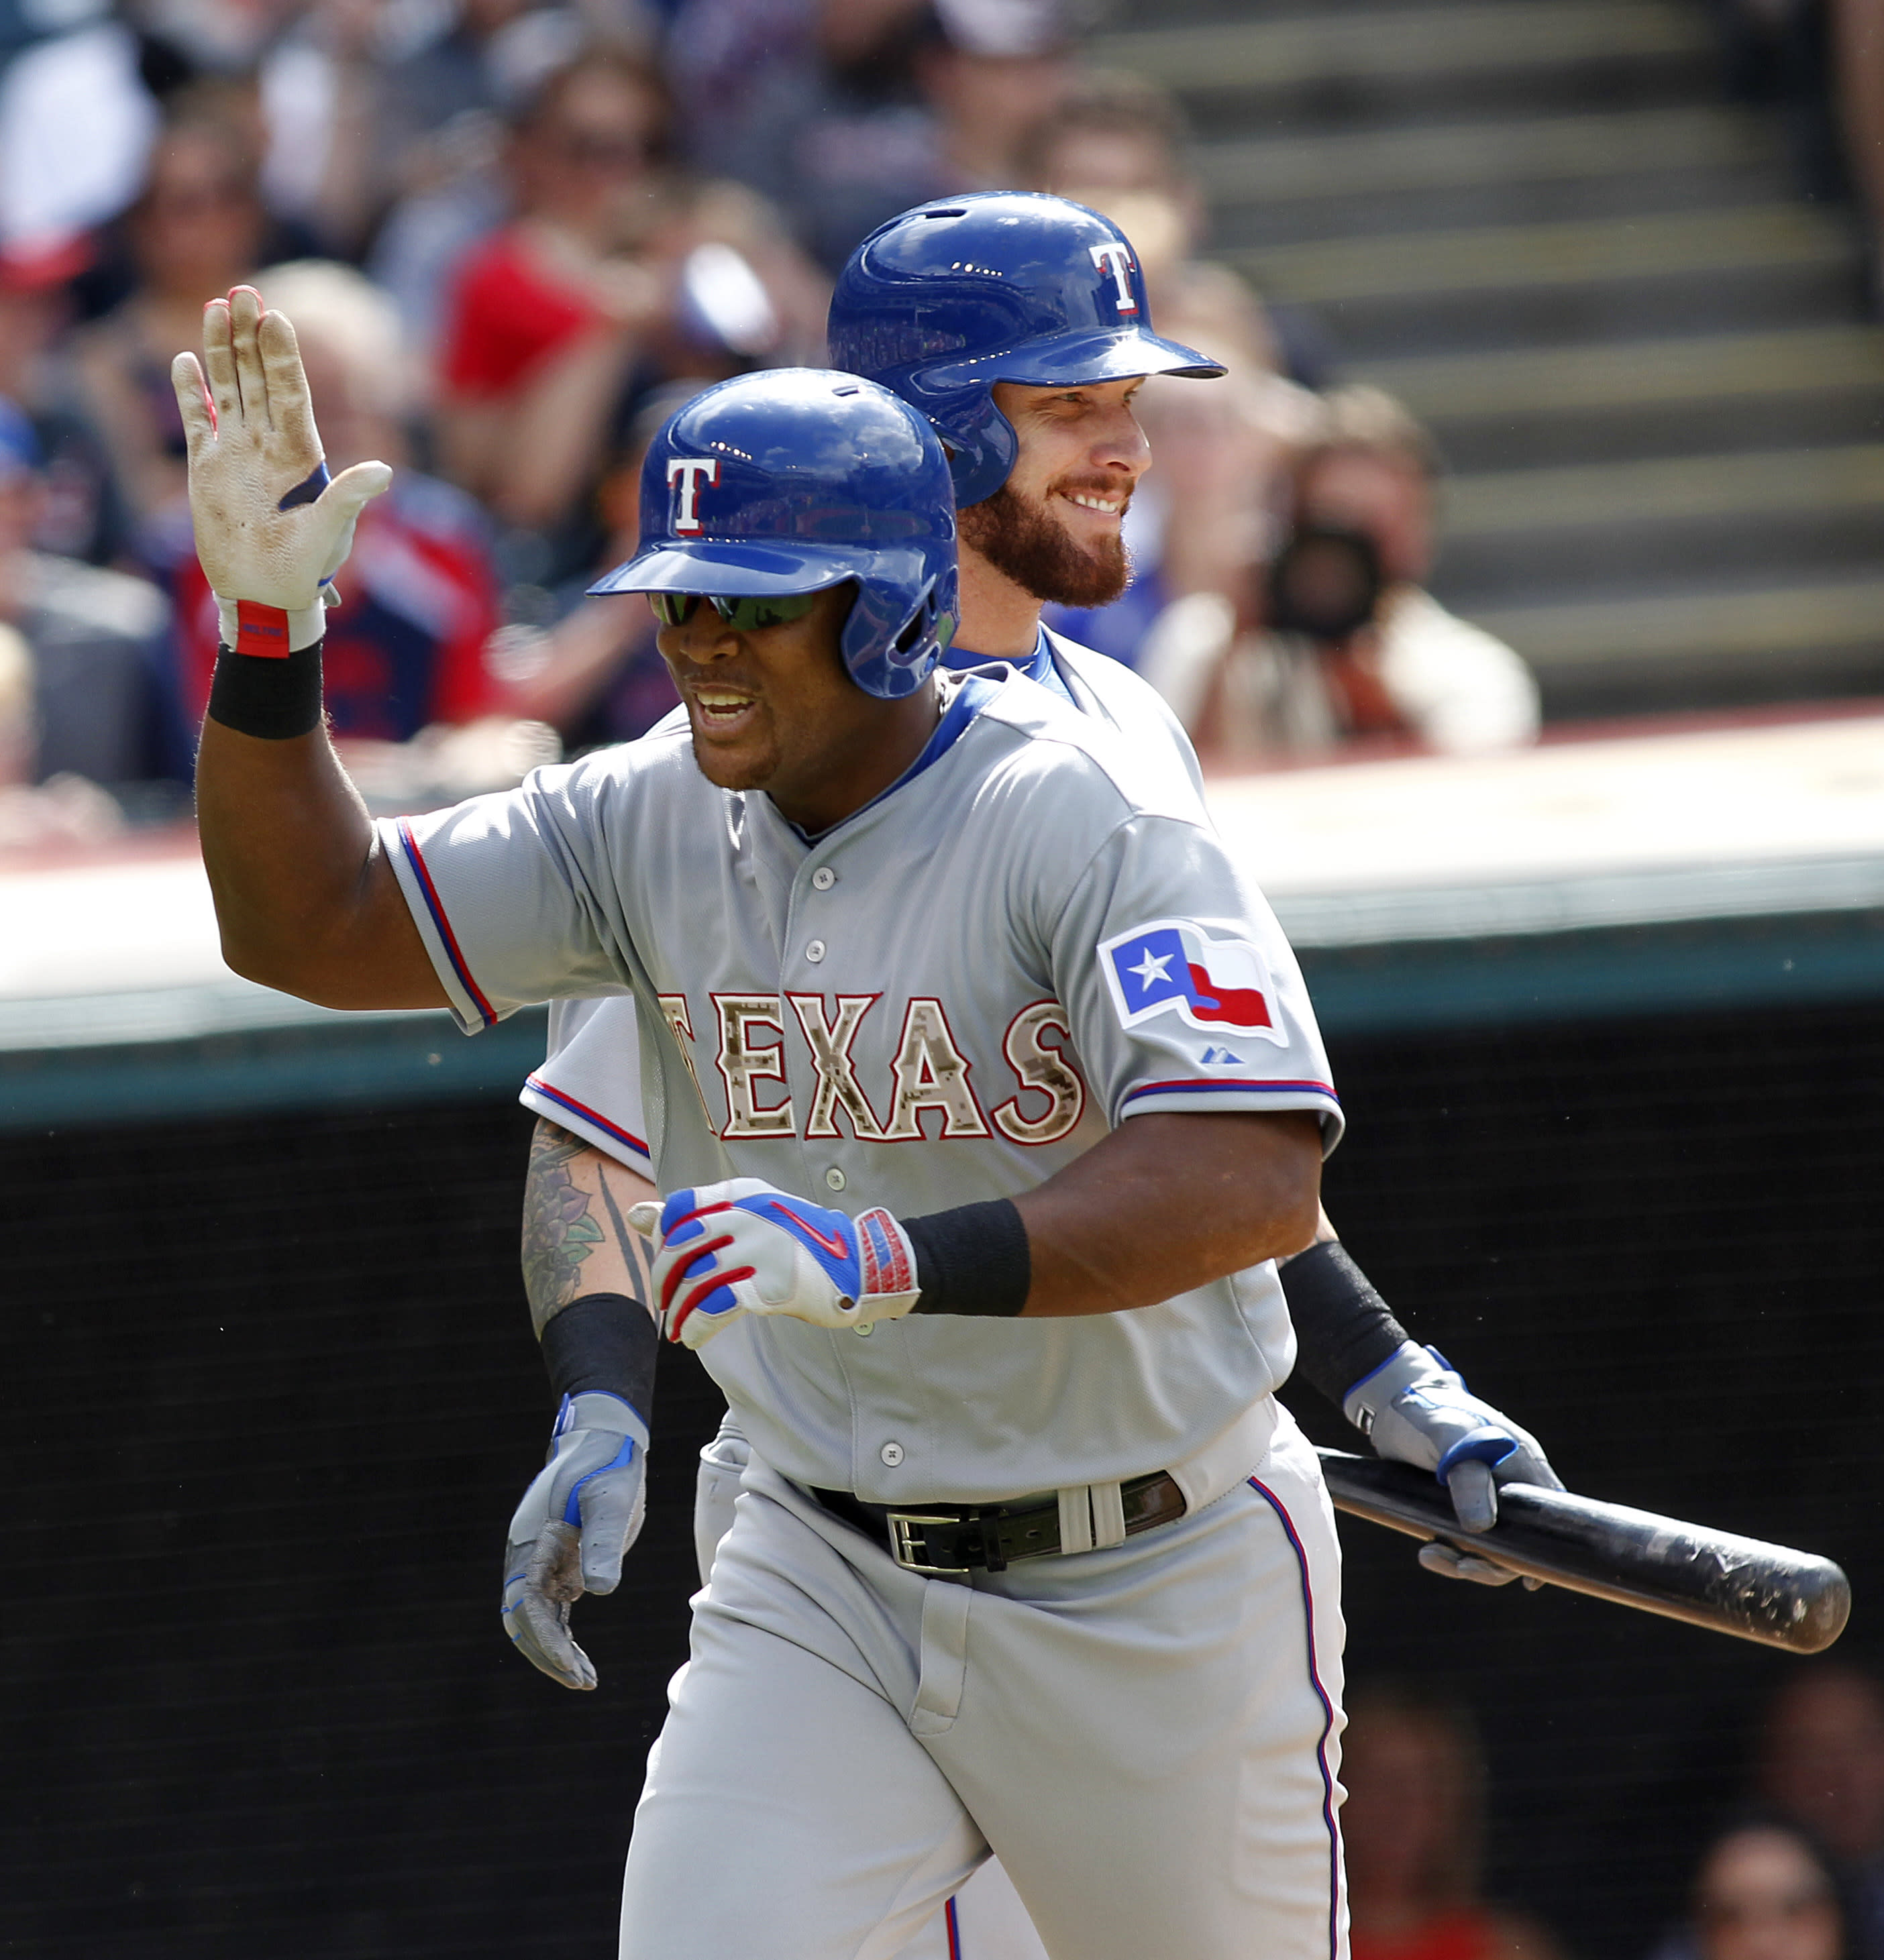 Rangers' Beltre out at least 2 weeks with sprained thumb